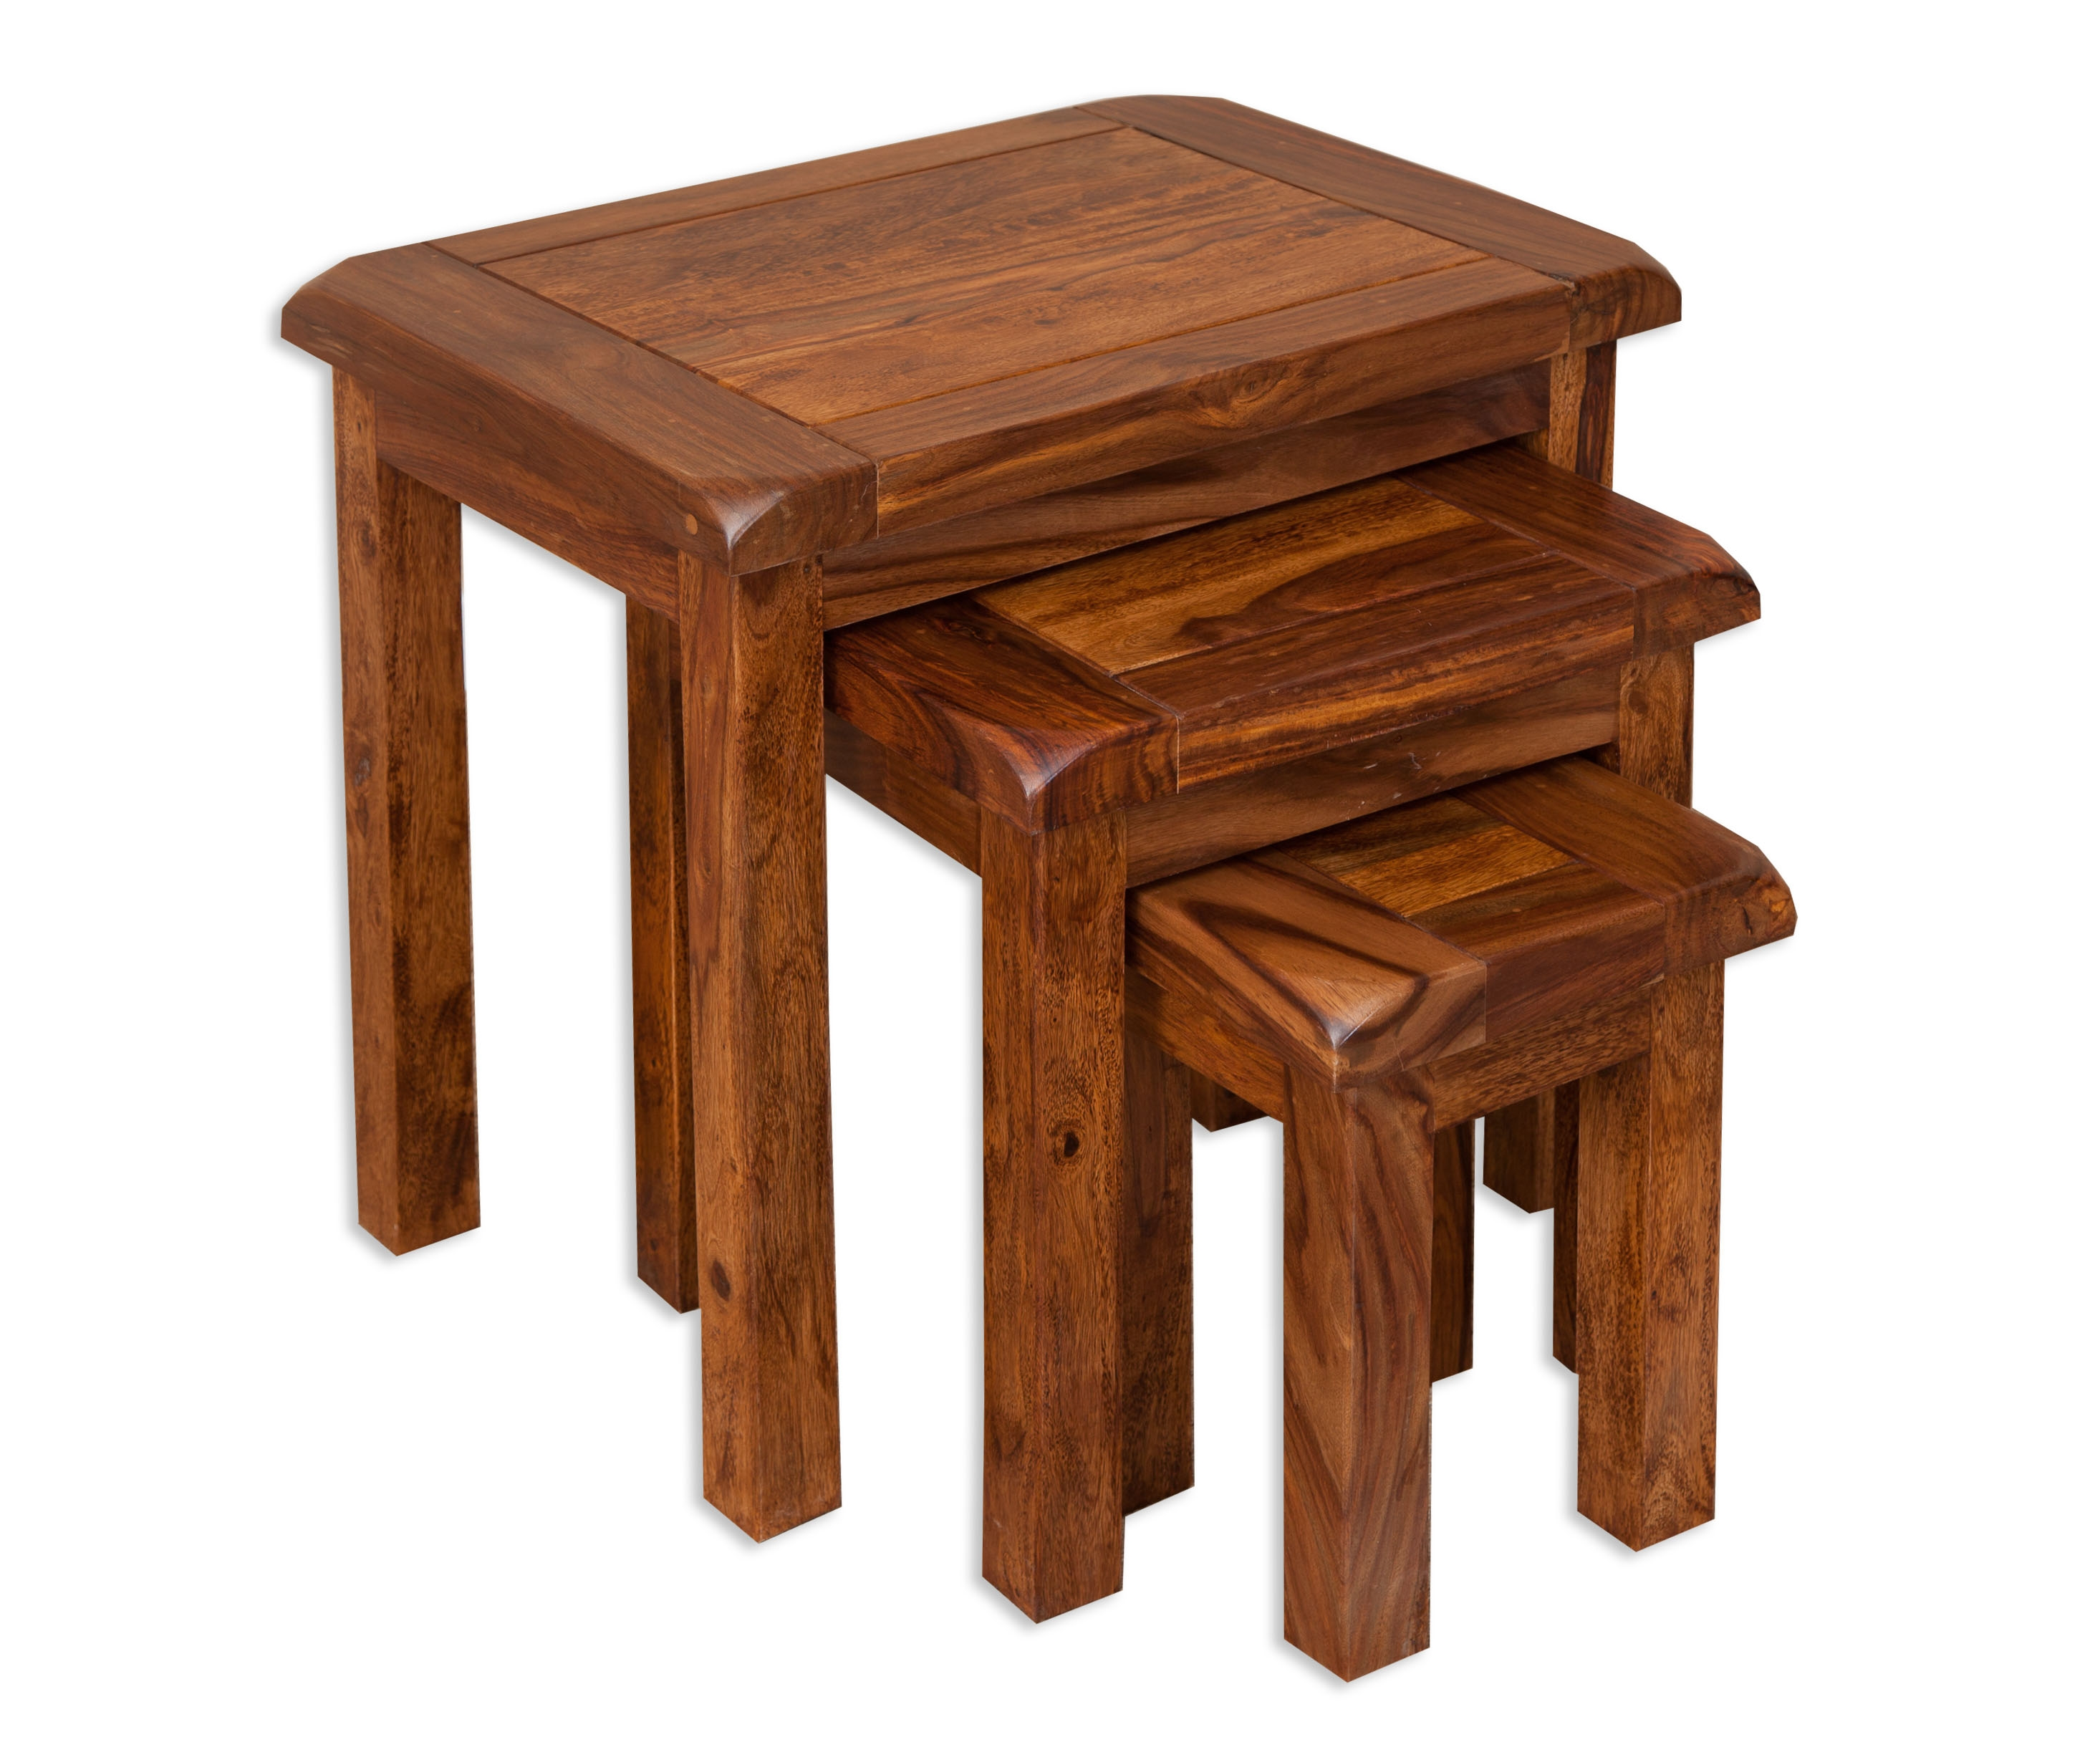 Wonderful image of Buy Villa Nest Of Tables Online – CFS UK with #441C0A color and 2932x2432 pixels